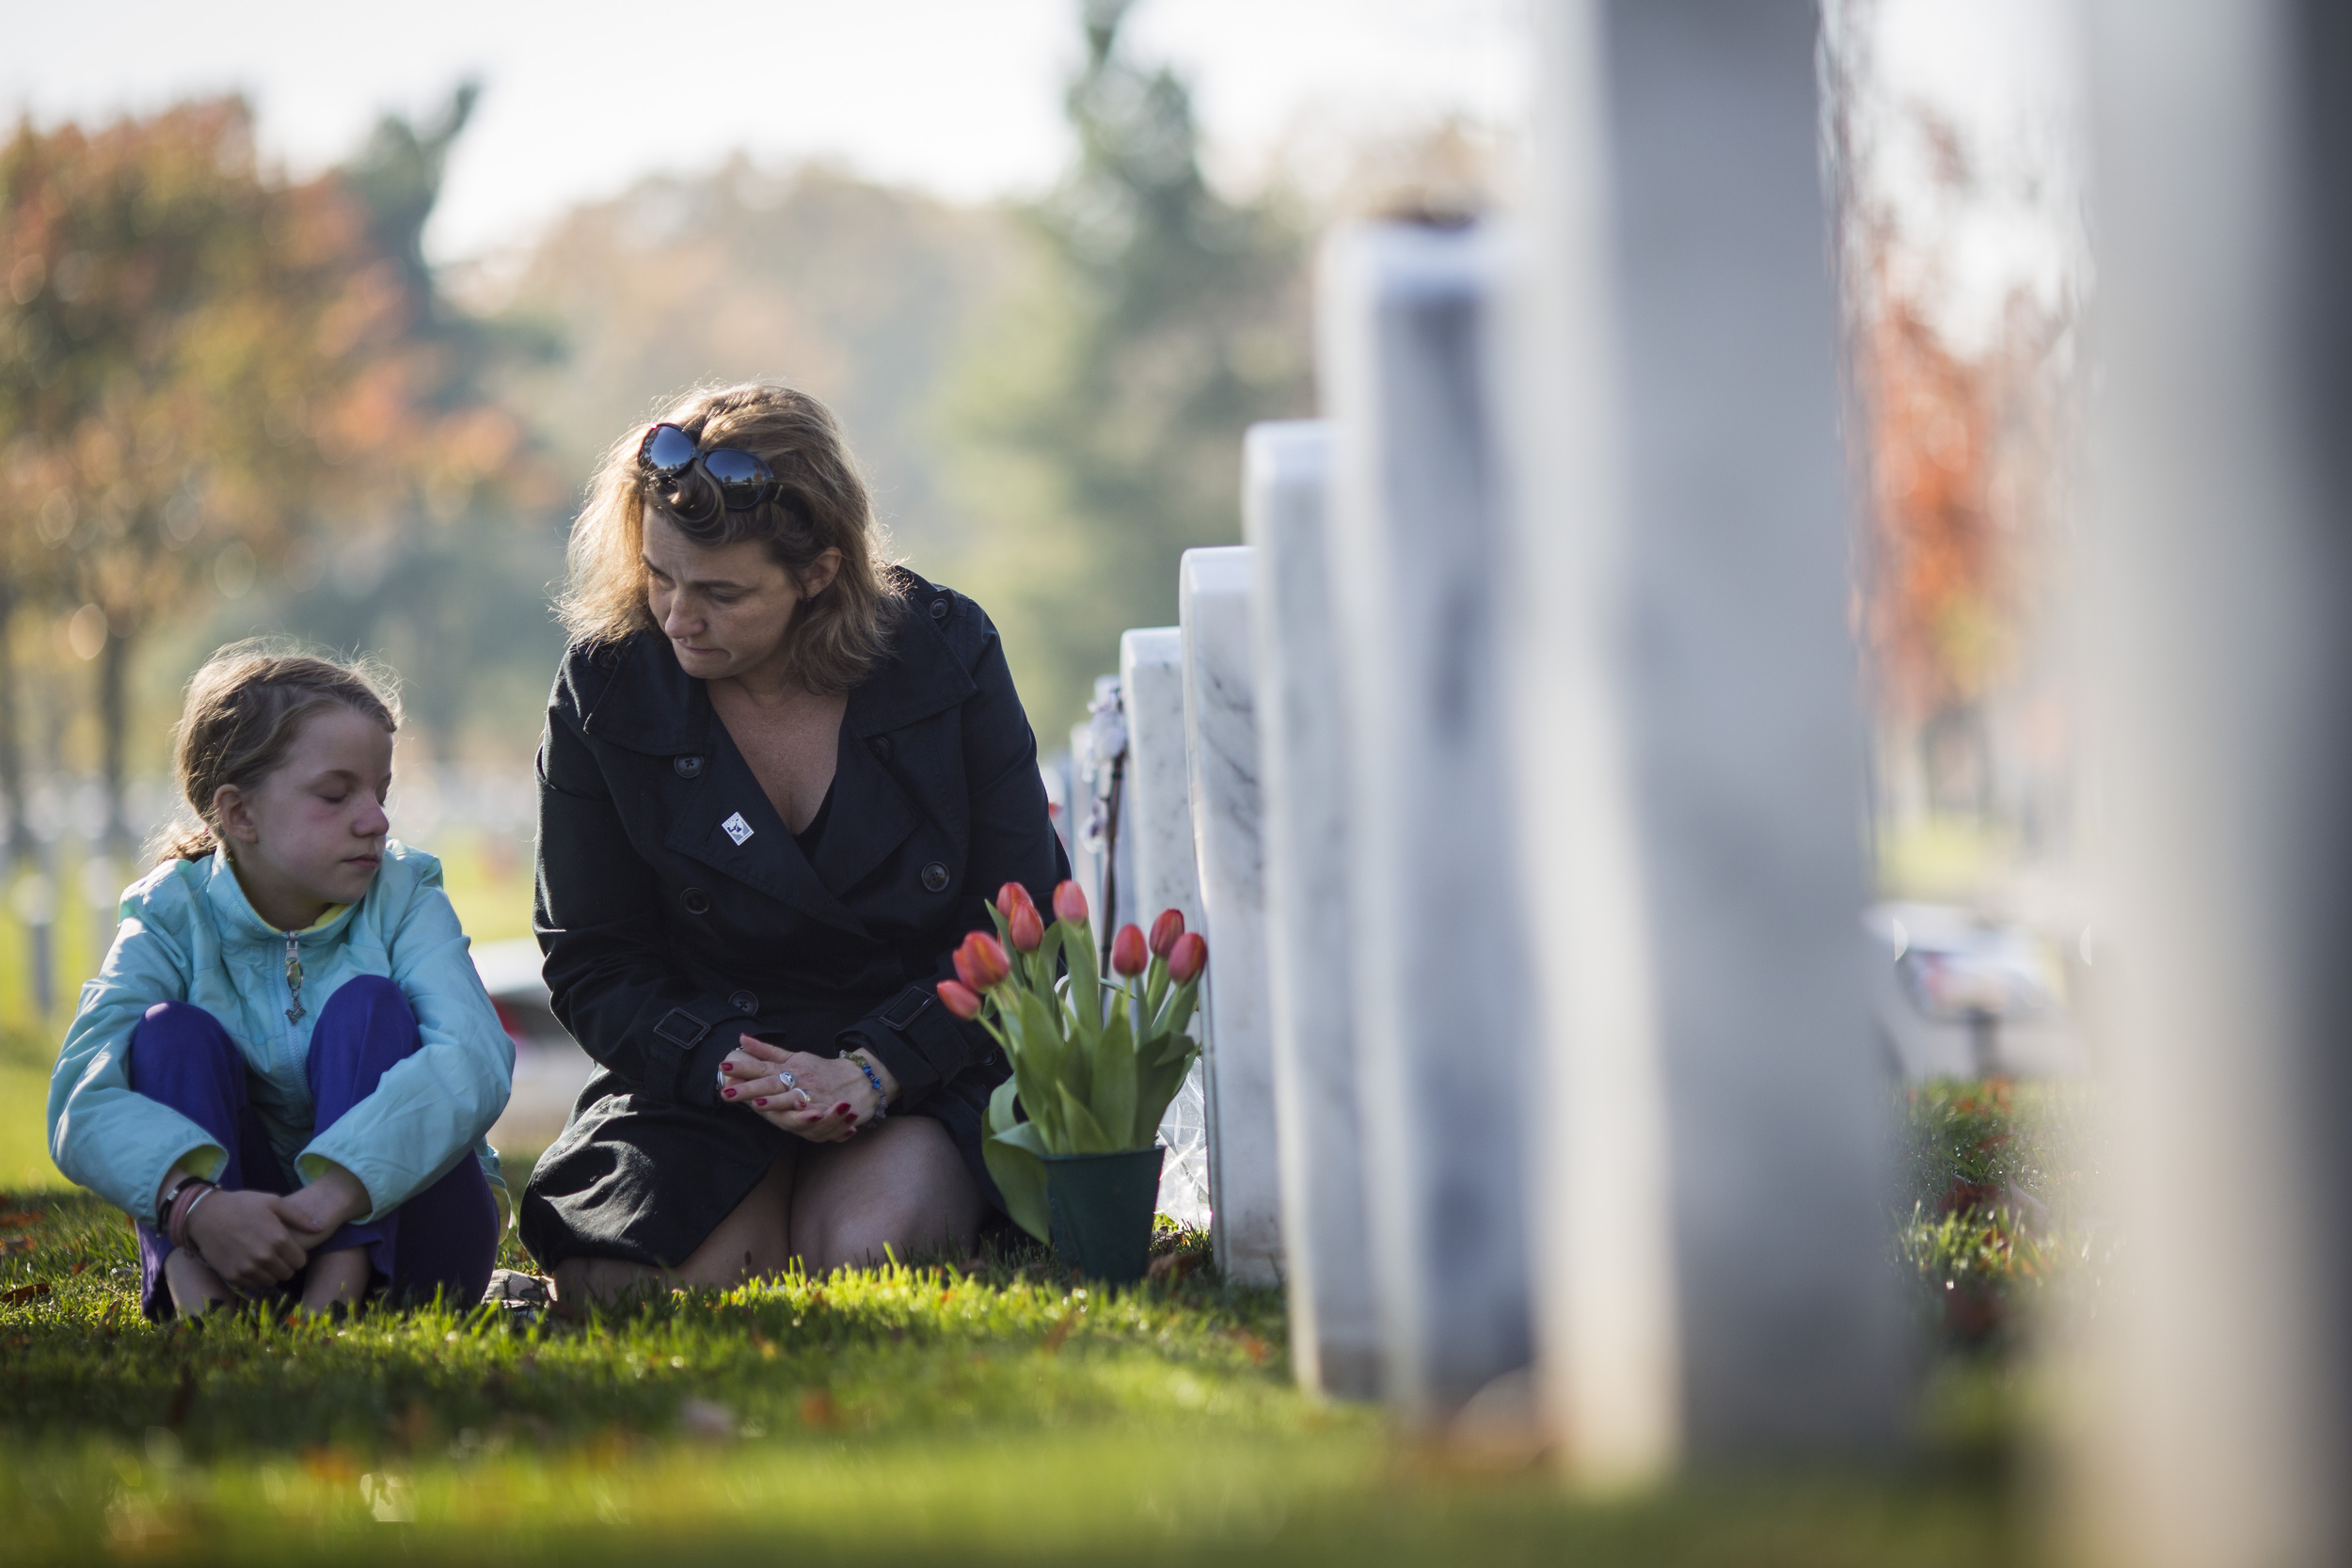 Stephanie Shain and her daughter Mia Roberts, 10, visit the grave of Shain's father, Robert George Shain a LTC in the U.S. Army who served in Vietnam and died on April 29, 2012, on Veterans Day at Arlington National Cemetery in Washington, DC on Tuesday November 11, 2014.